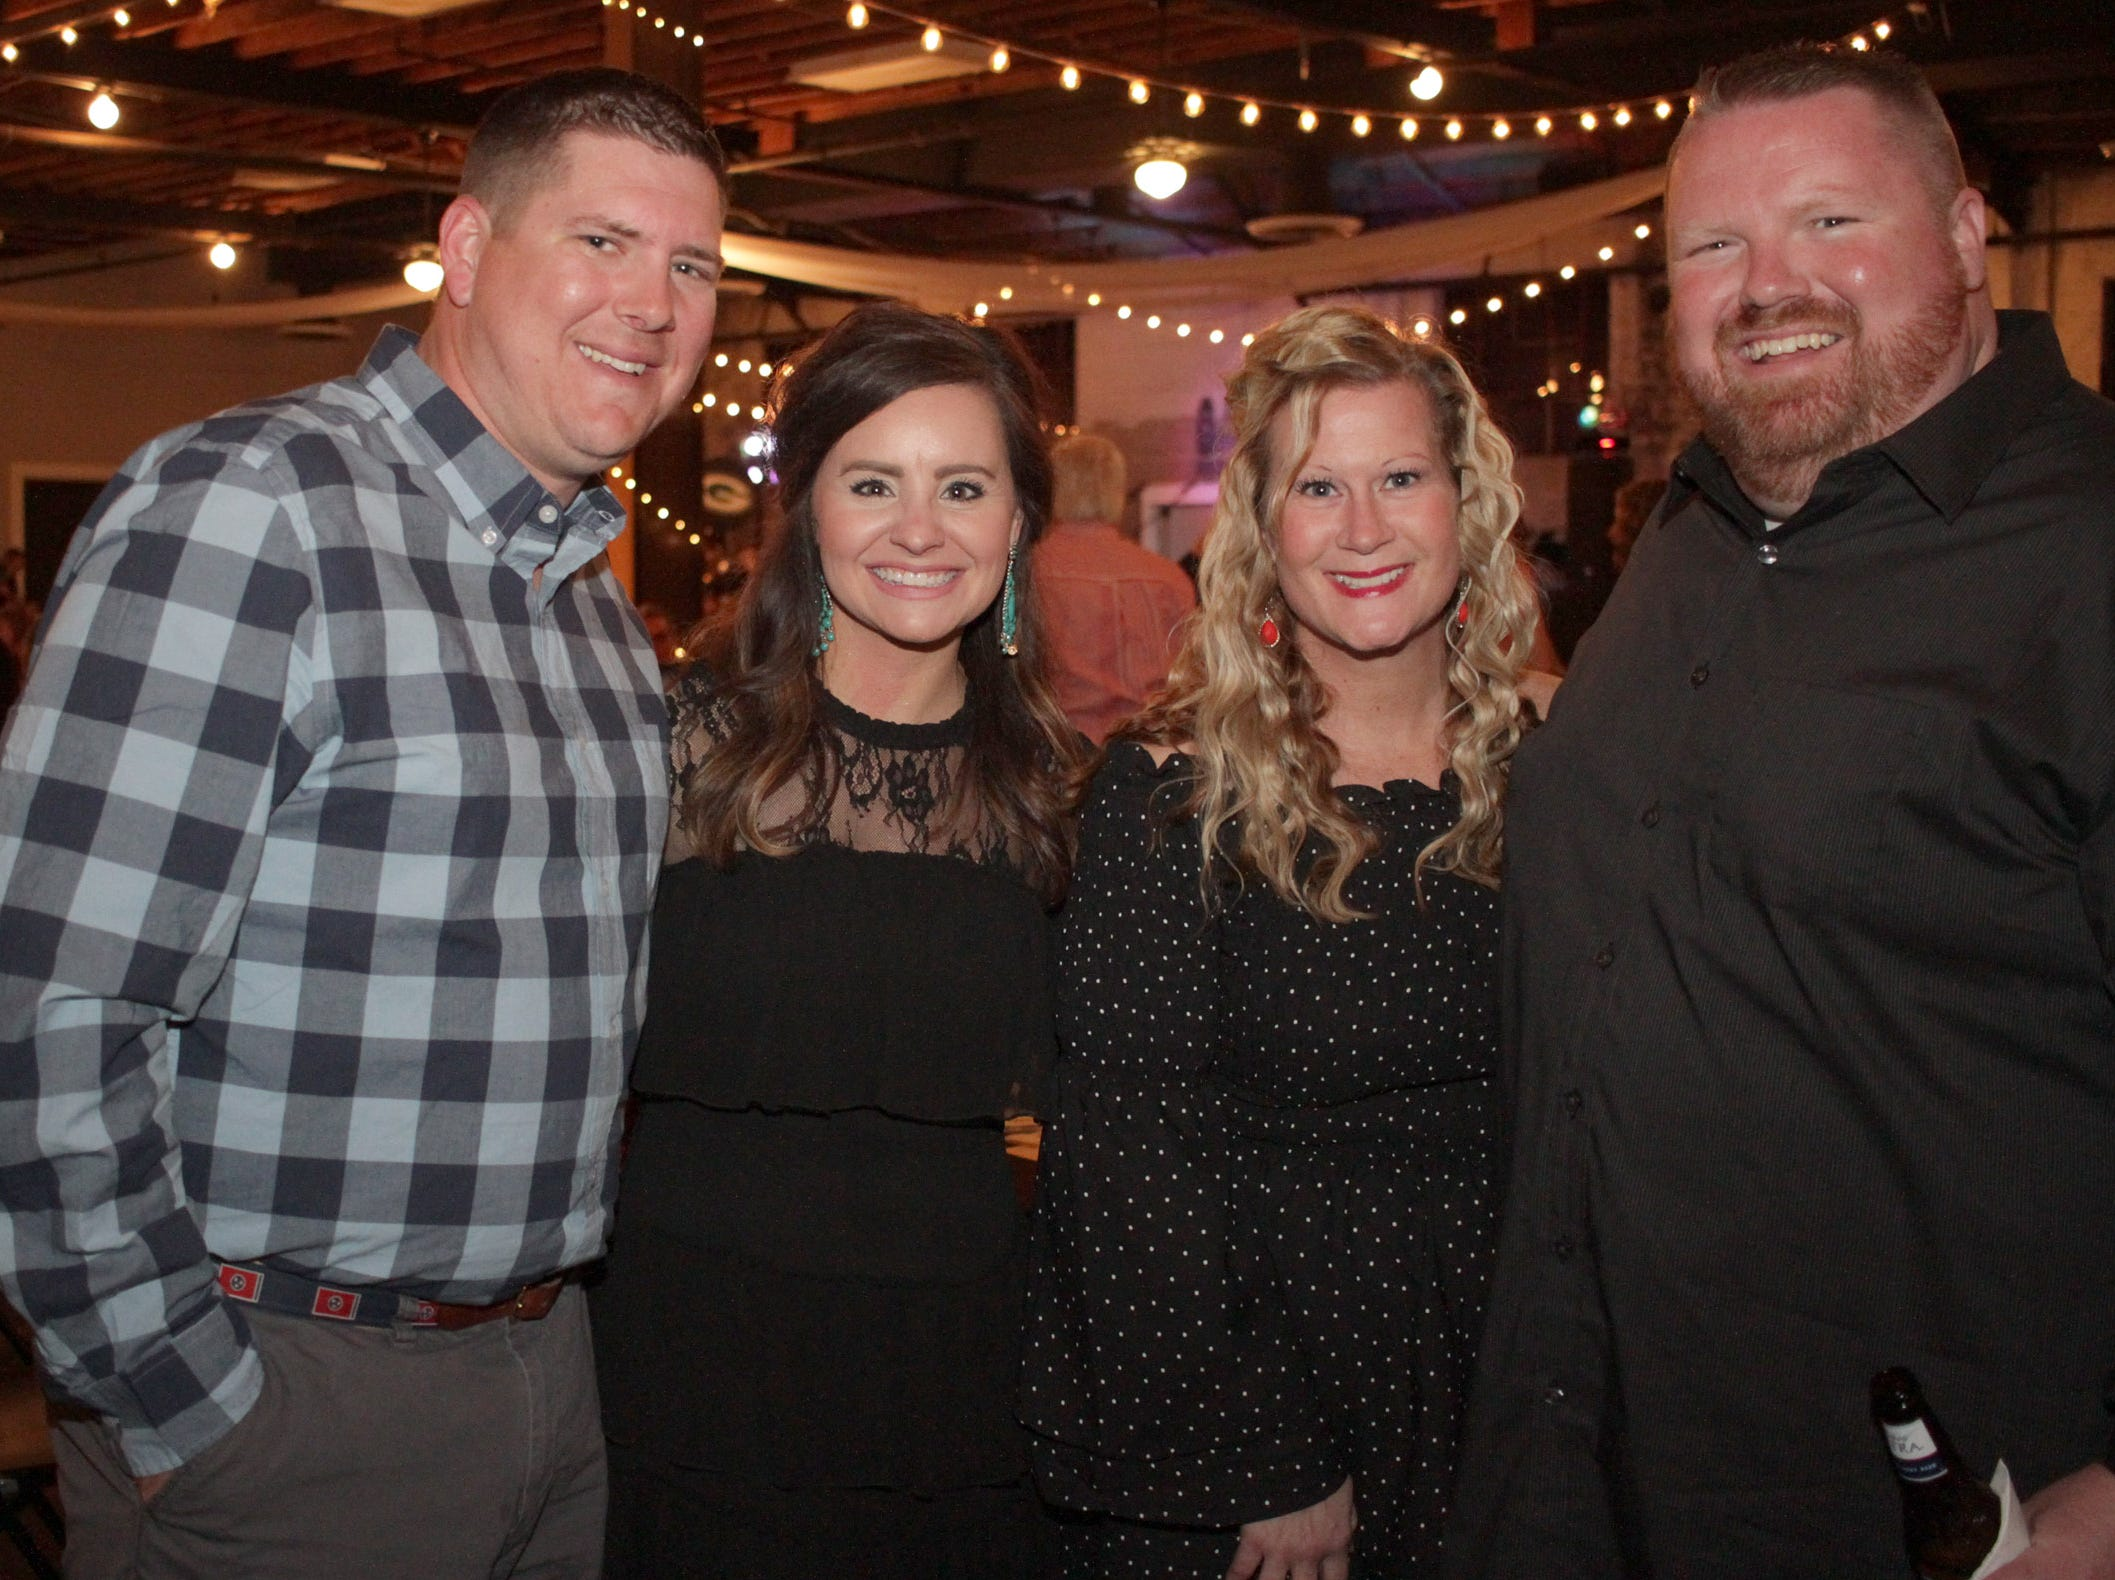 Stephen and Amy McKinzie with Niki and Steven Oldhan at the Green and Gold Gala benefitting Gallatin High School on Saturday, March 9, 2019.